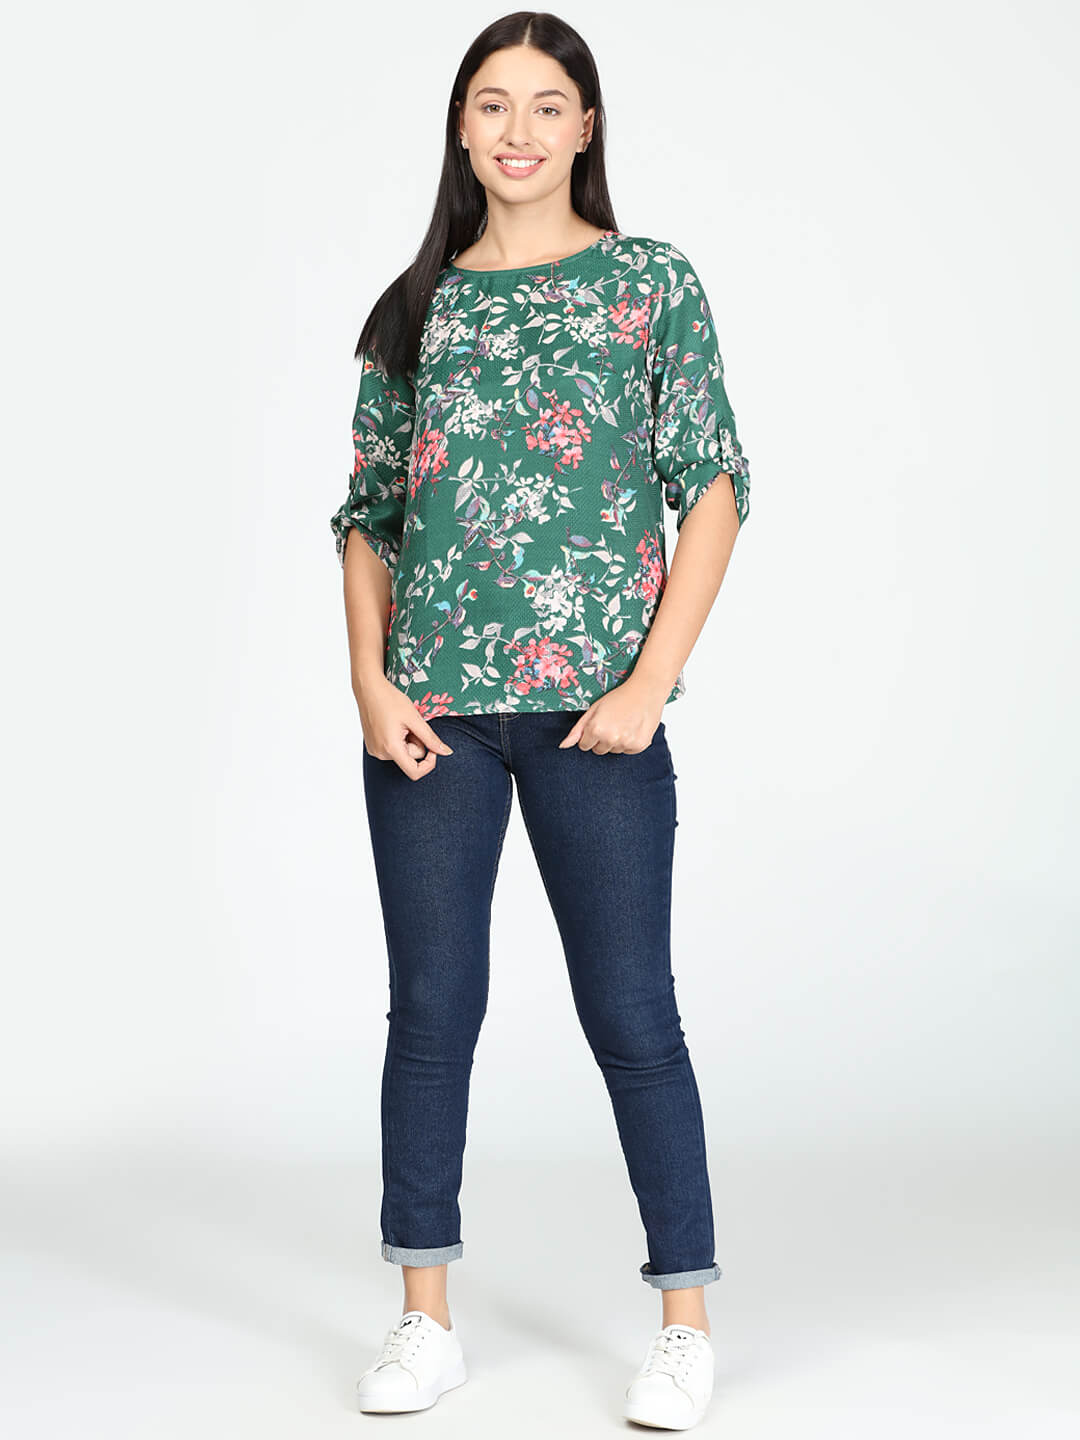 Green Floral Top